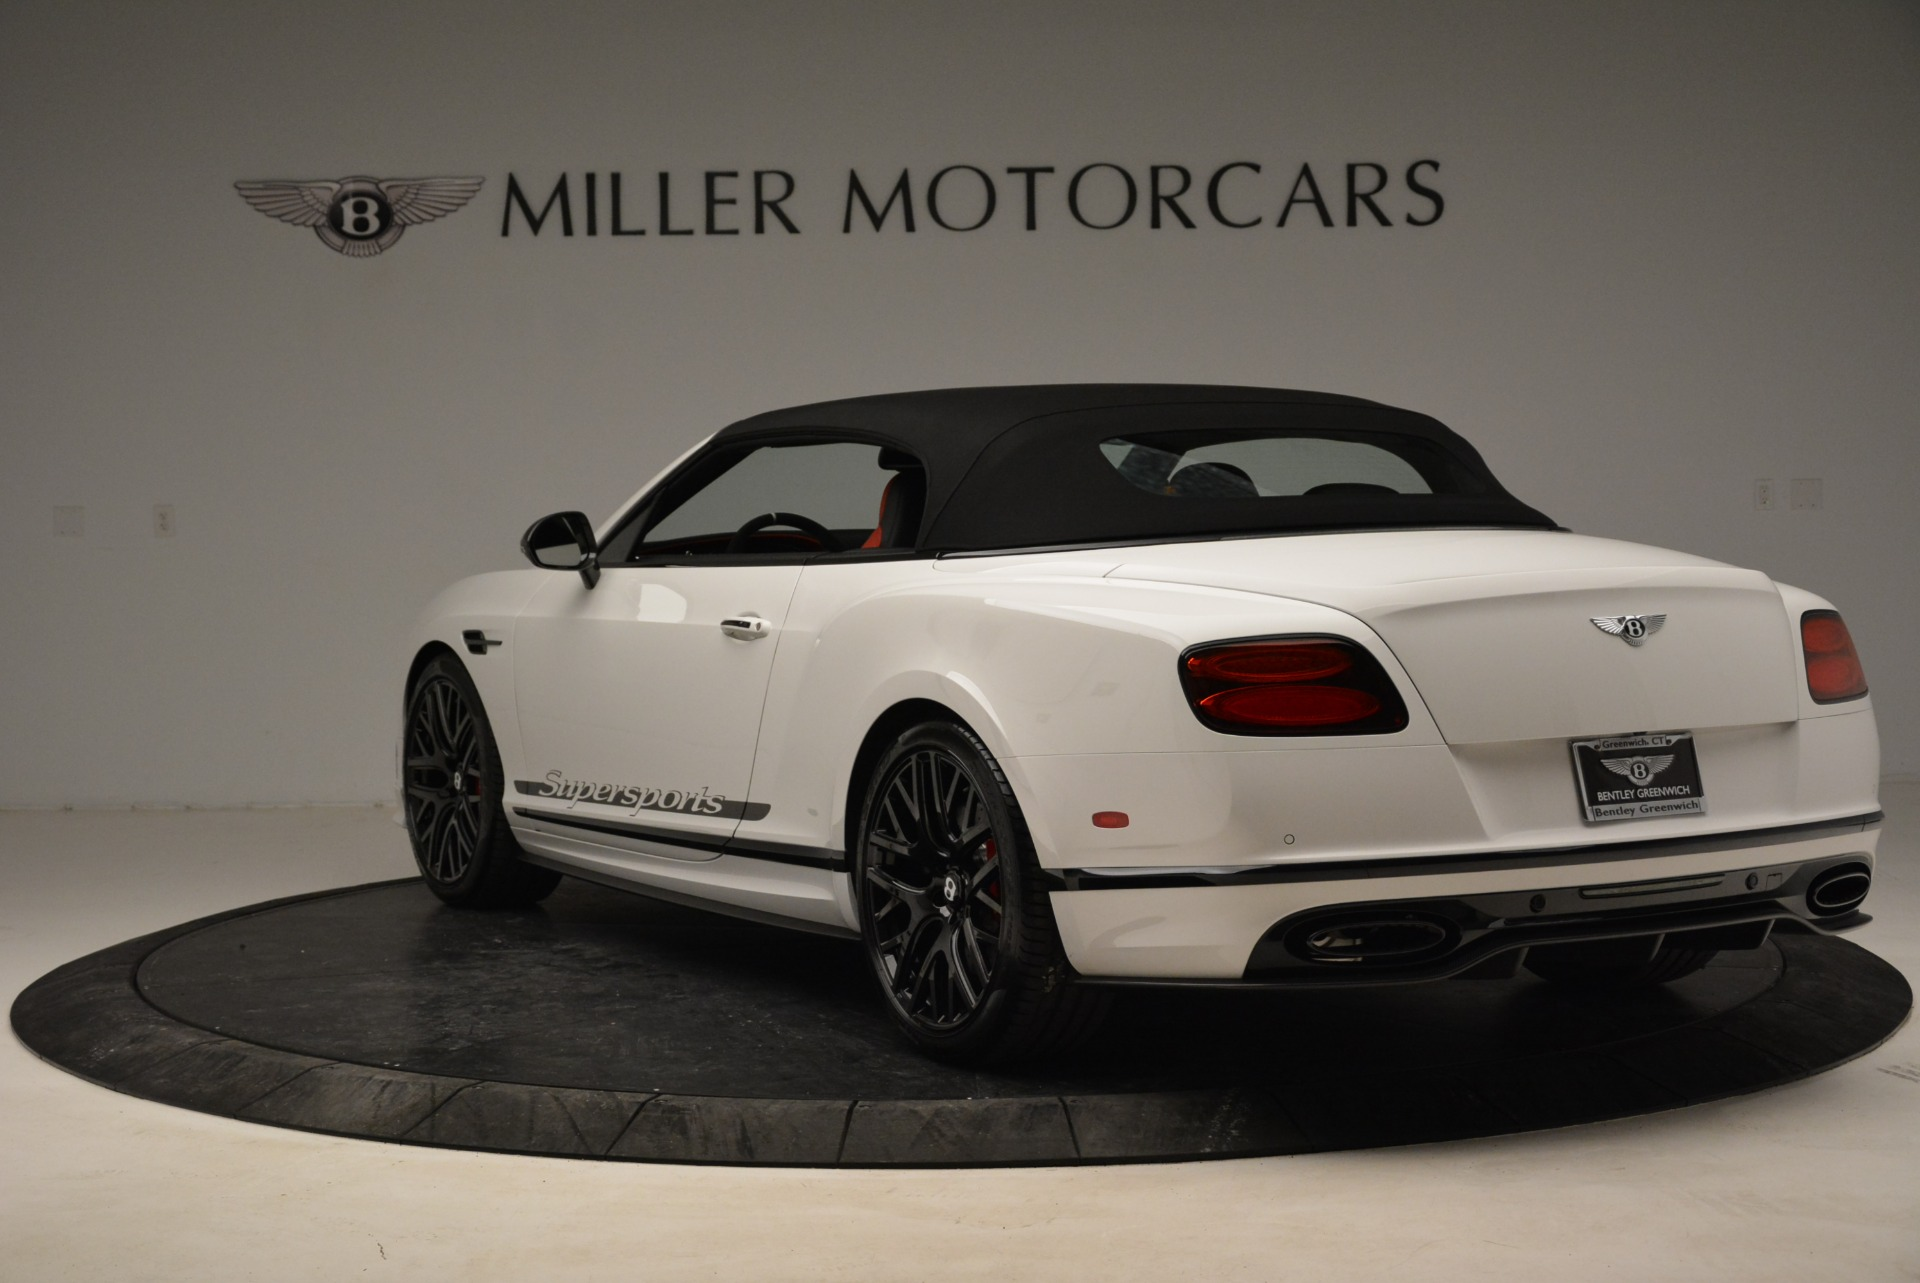 Used 2018 Bentley Continental GT Supersports Convertible For Sale In Westport, CT 1875_p15